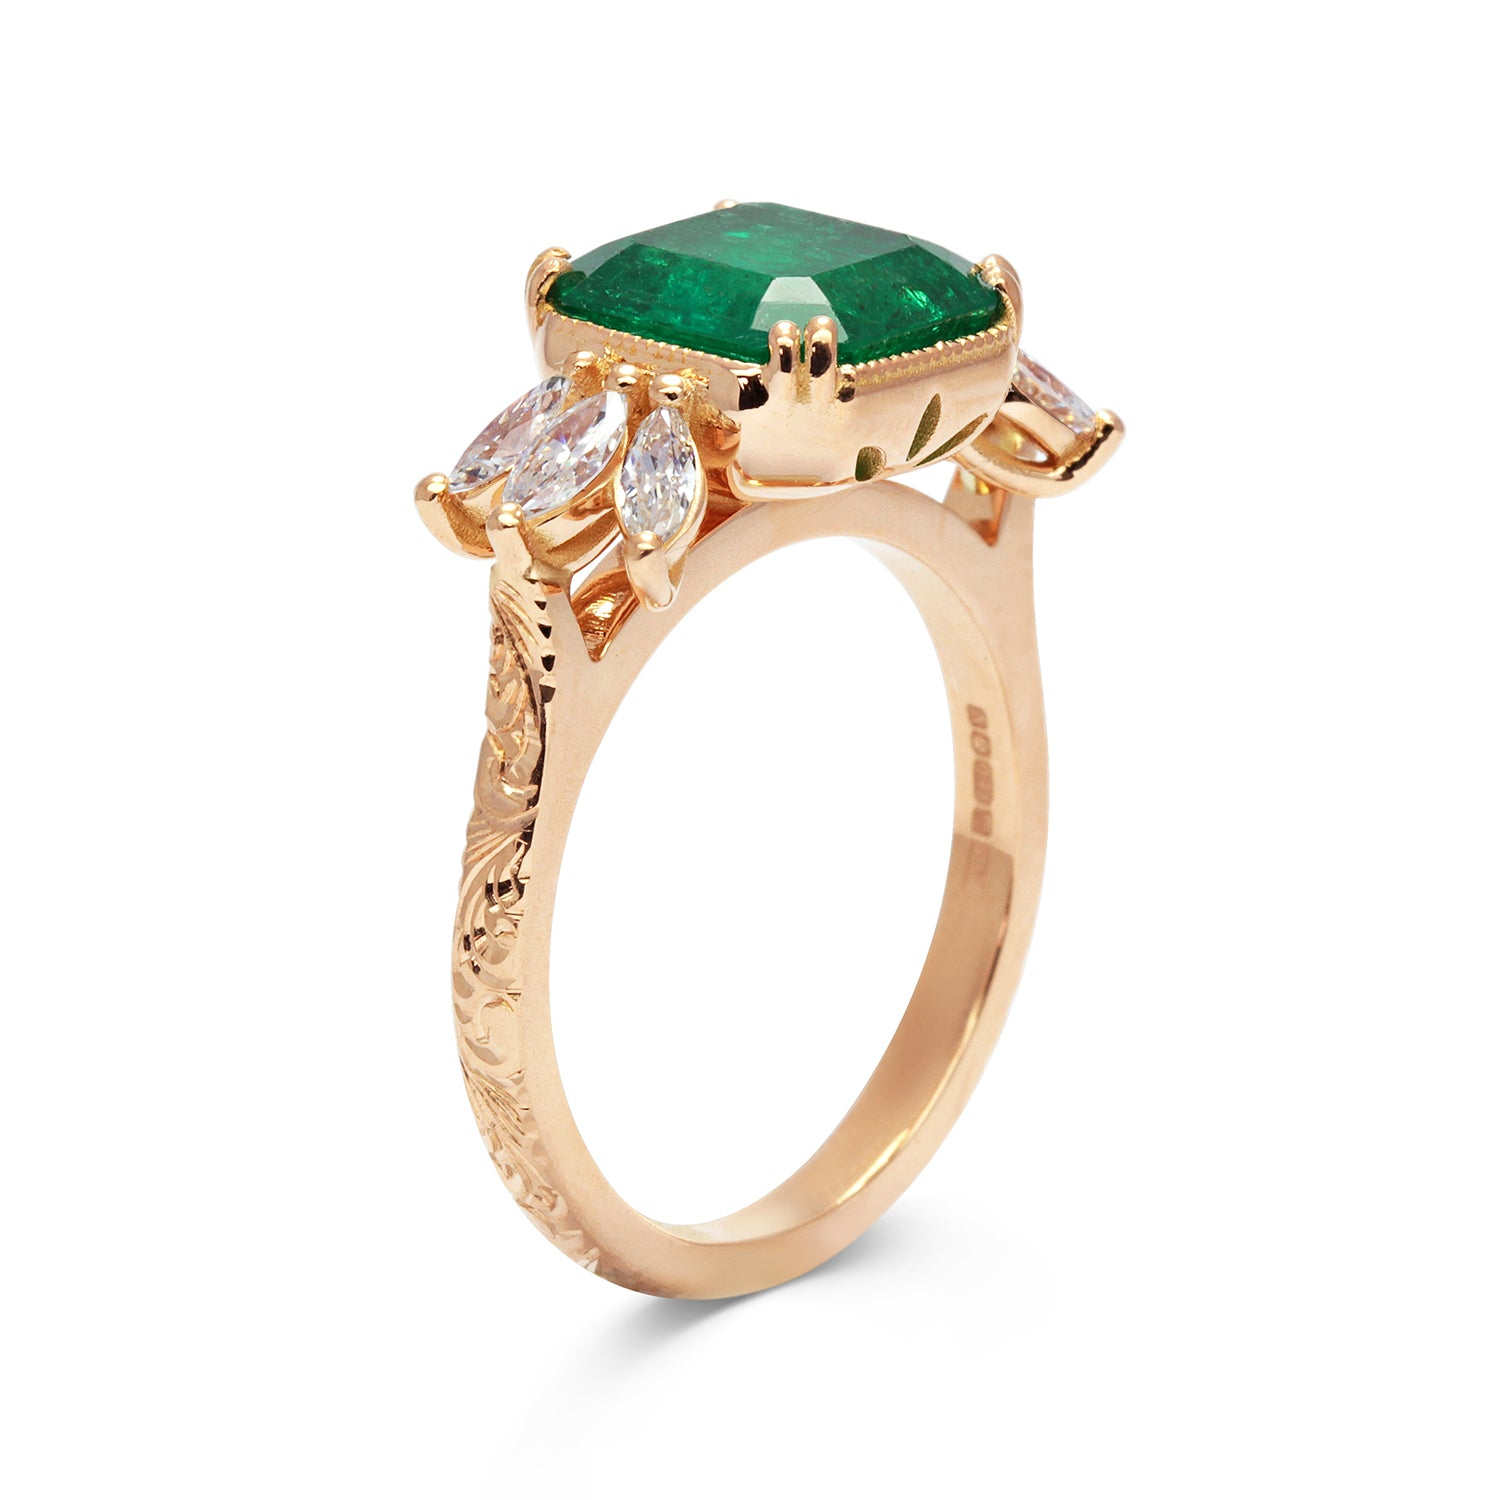 Bespoke Madeline Antique Emerald Engagement Ring